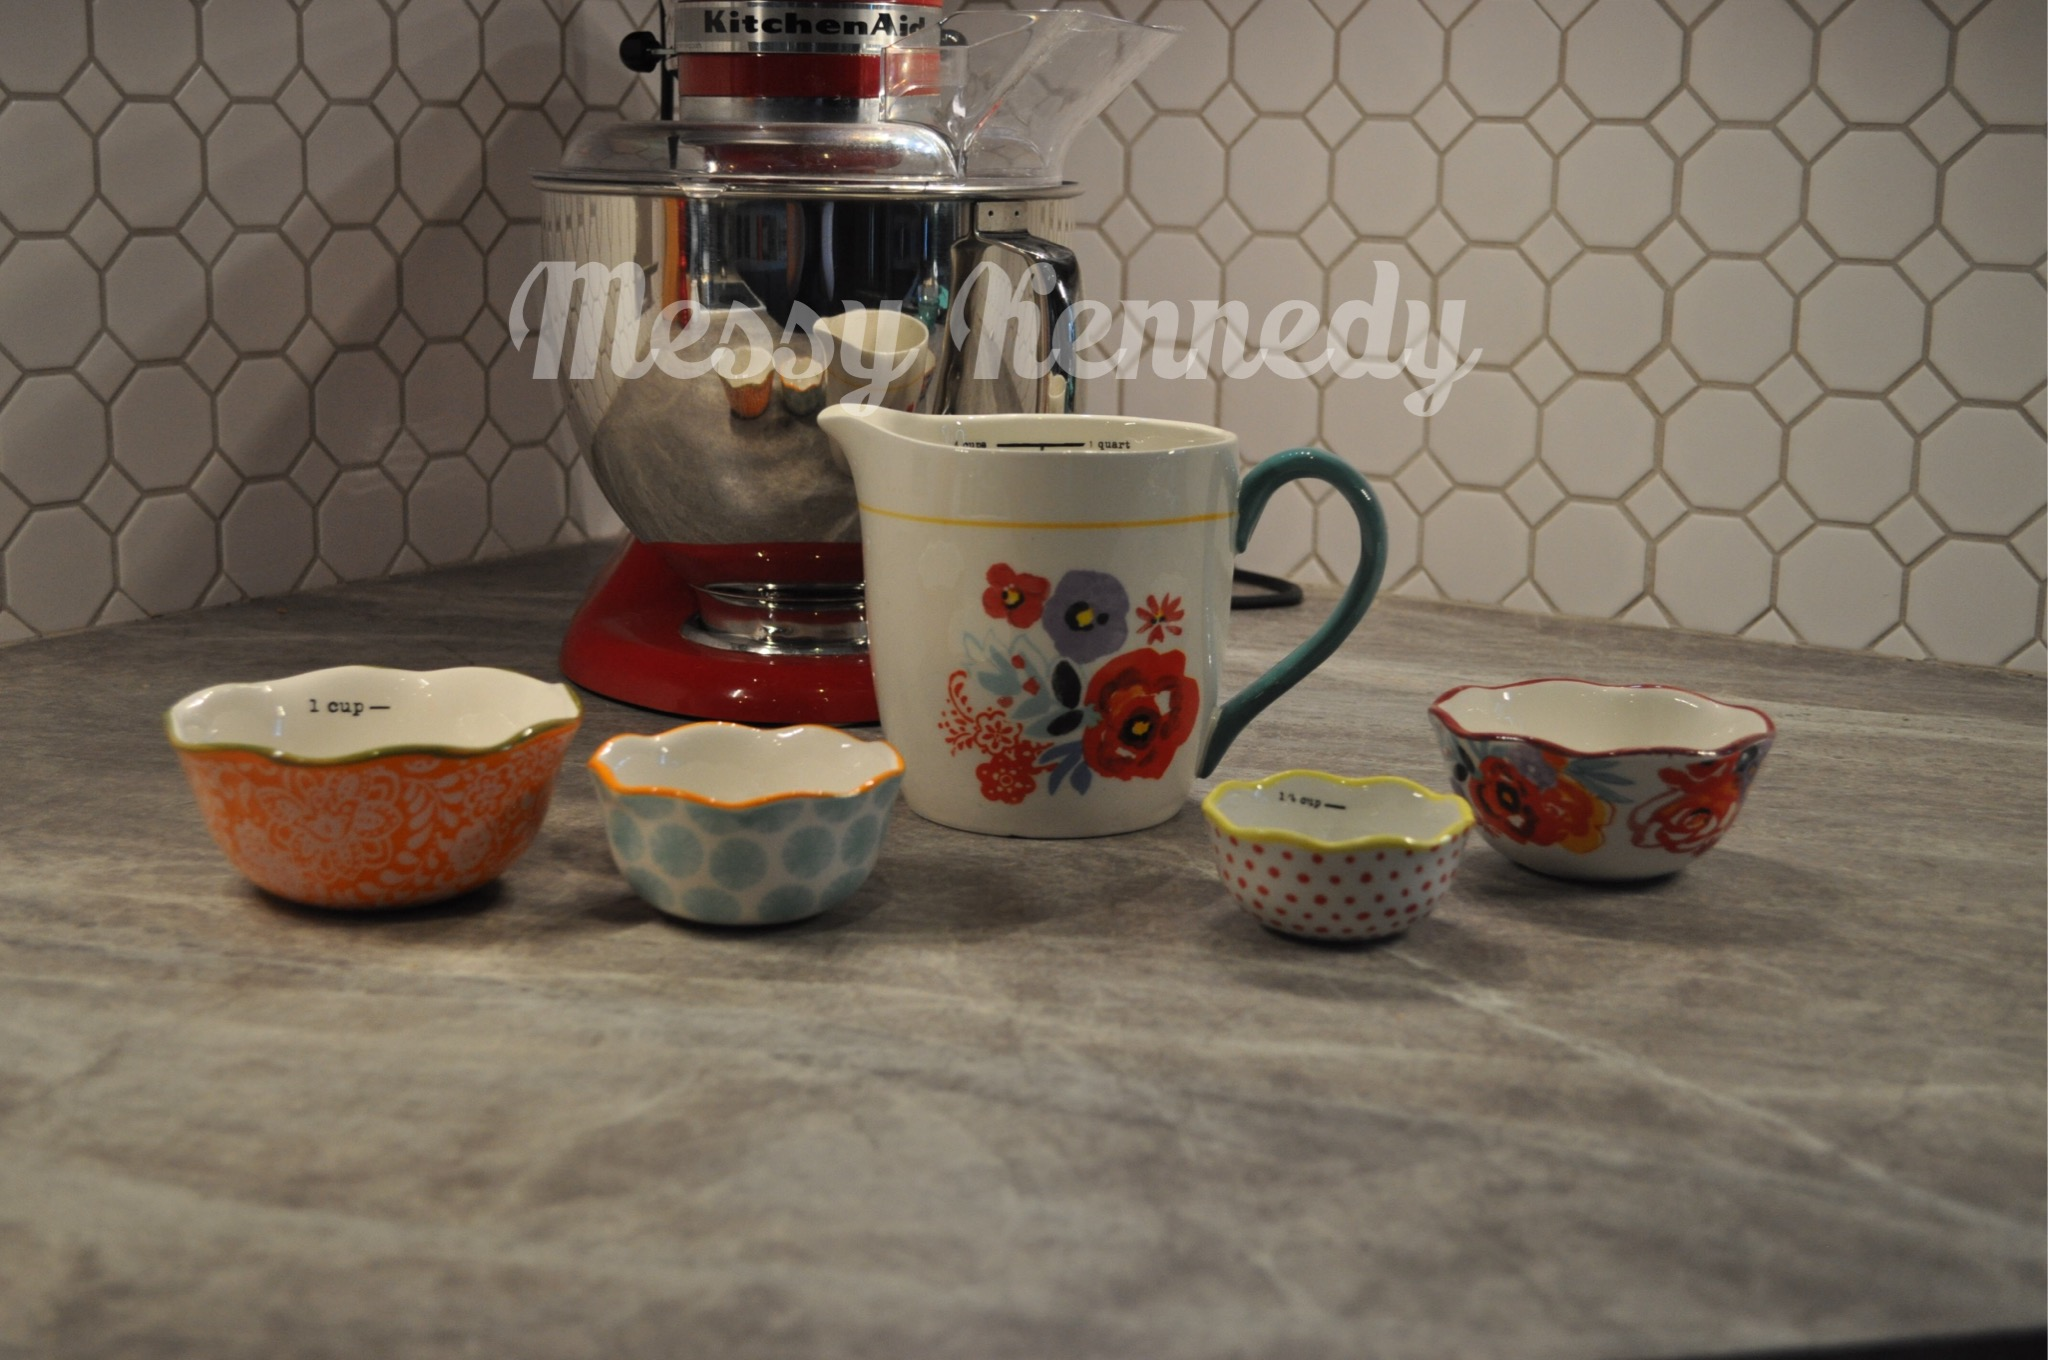 the pioneer woman kitchen collection review messy kennedy